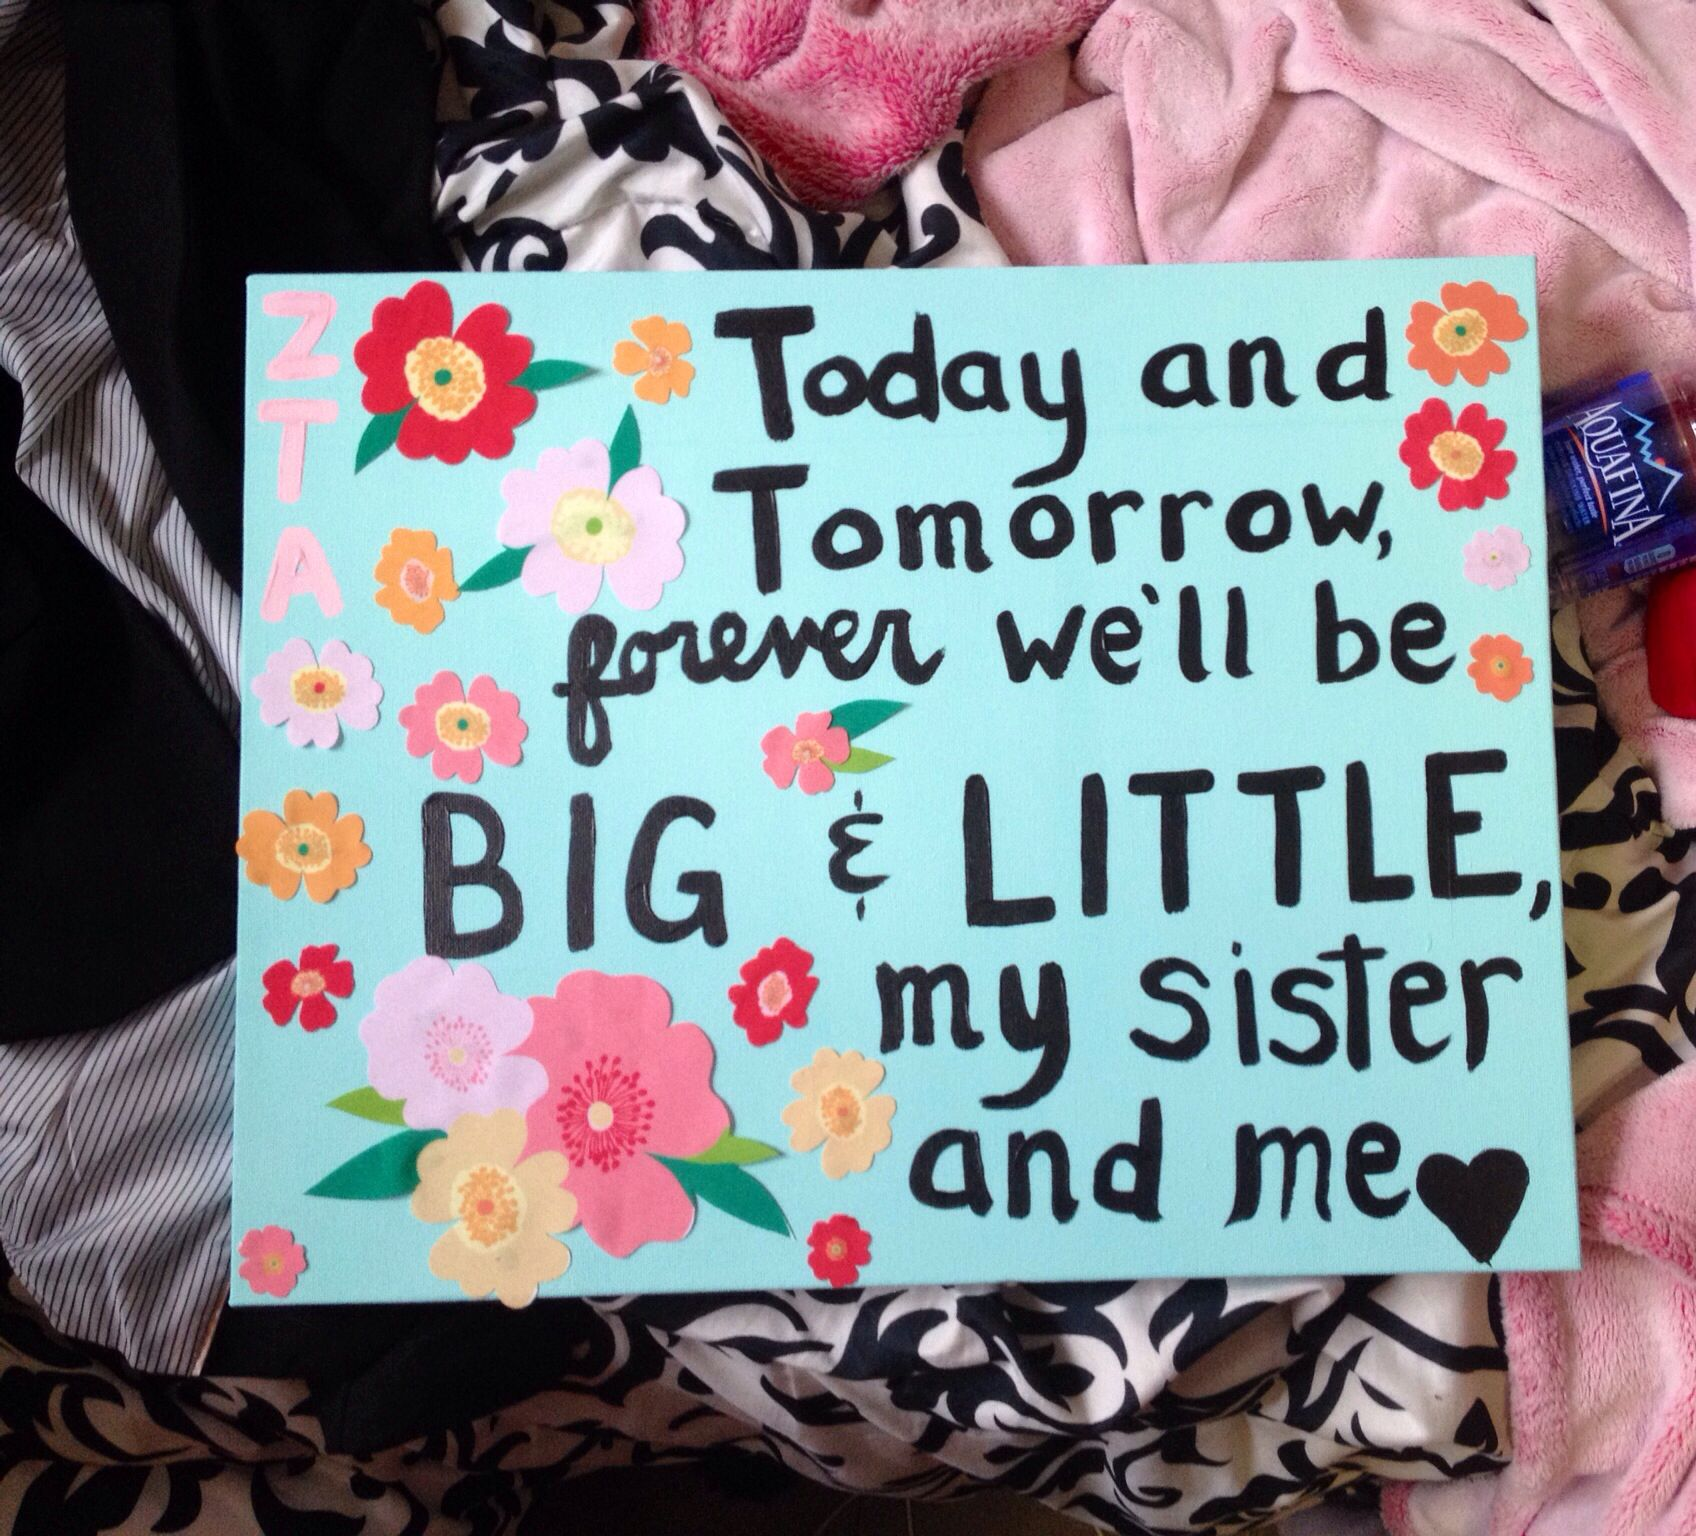 Maybe a saying for big little reveal shirts pinpoint for Sorority crafts for little